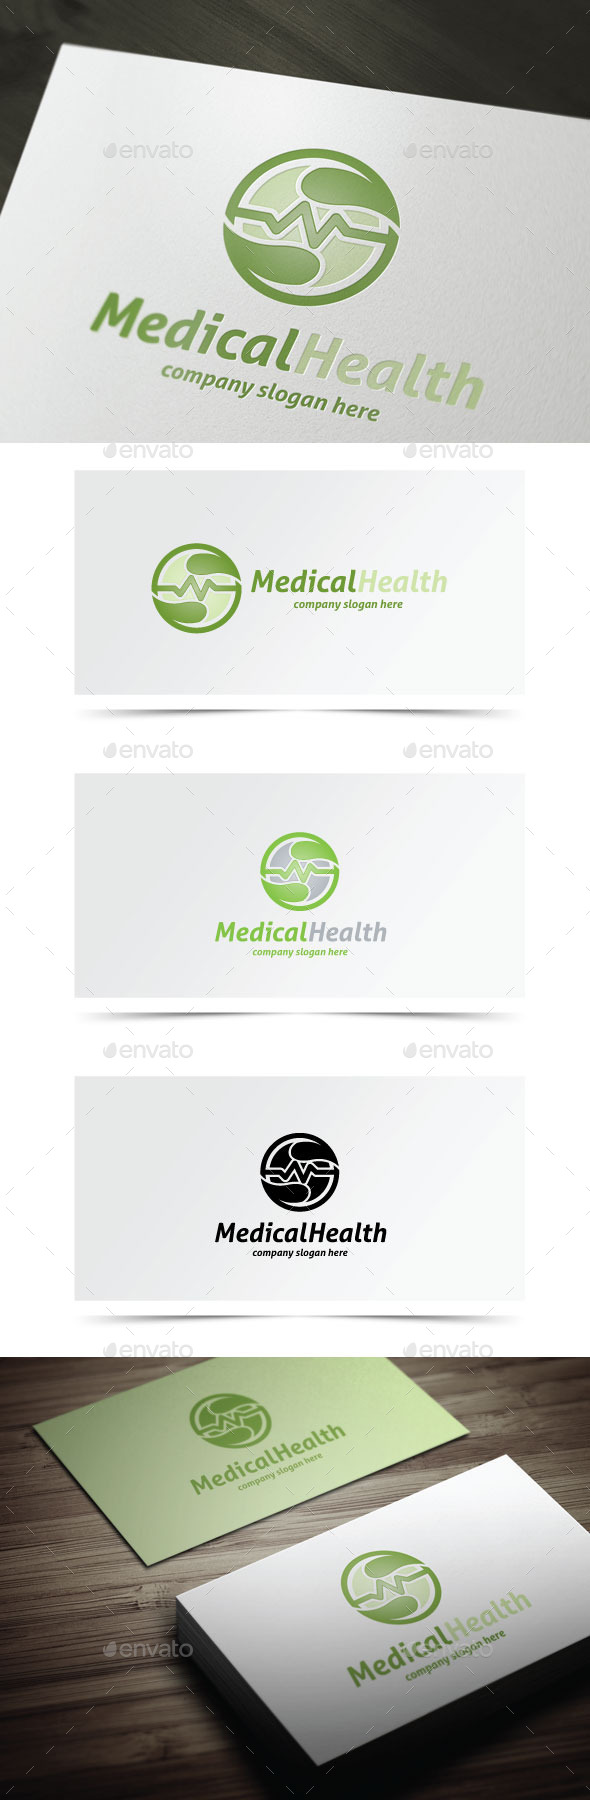 GraphicRiver Medical Health 10490931